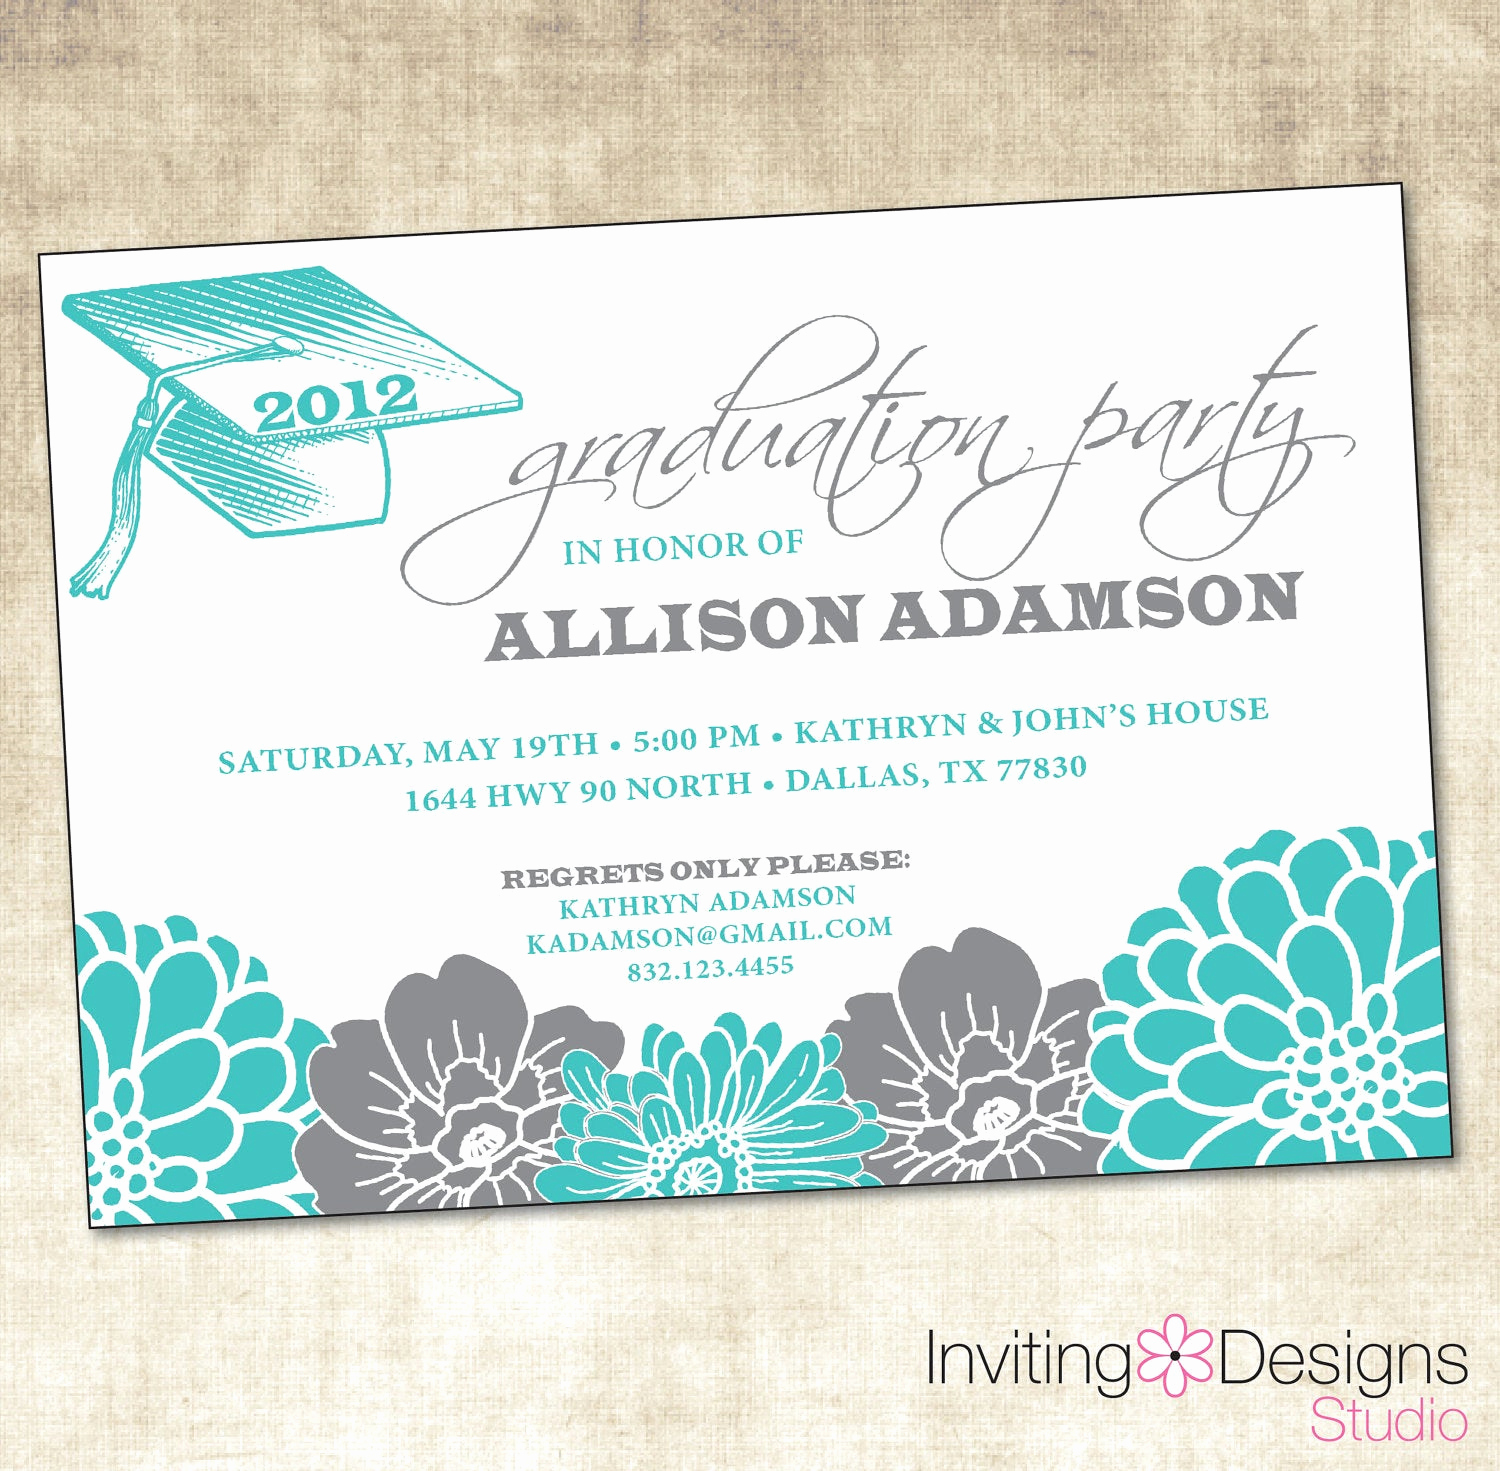 Graduation Announcement and Party Invitation Luxury Graduation Party Invitation Printable File